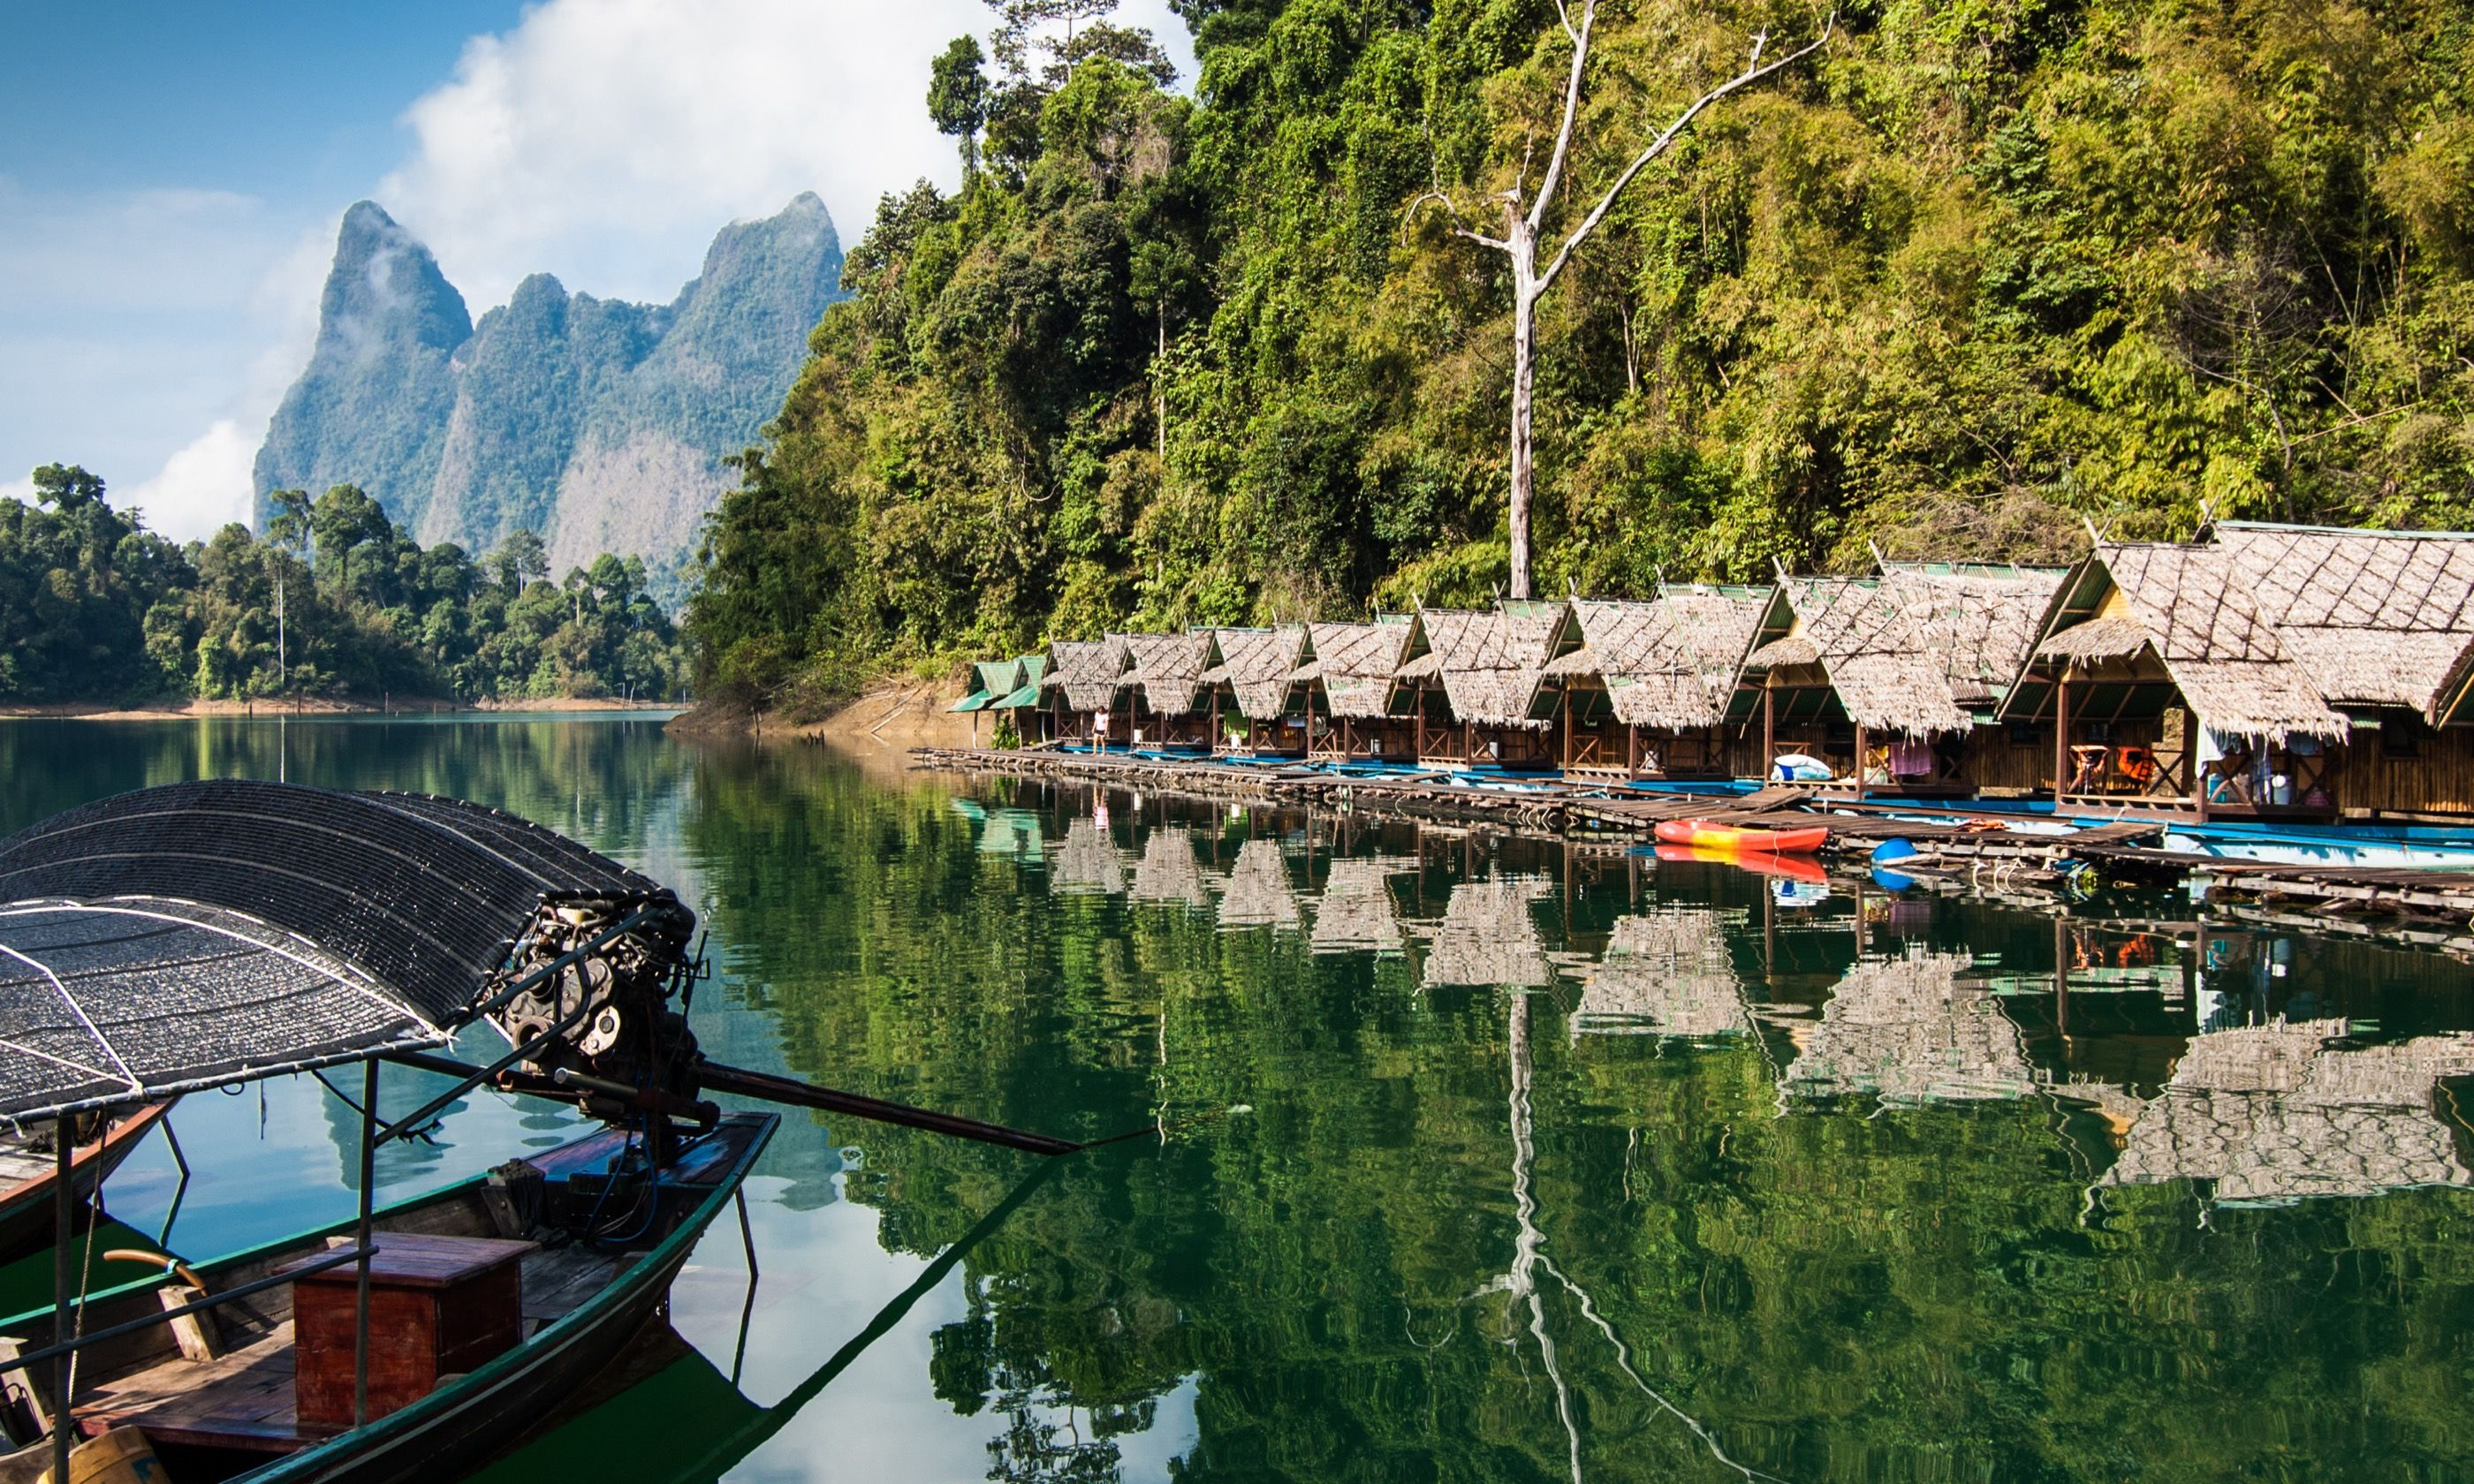 Lakeside raft houses on Cheow Lan Lake, Khao Sok National Park (Dreamstime)